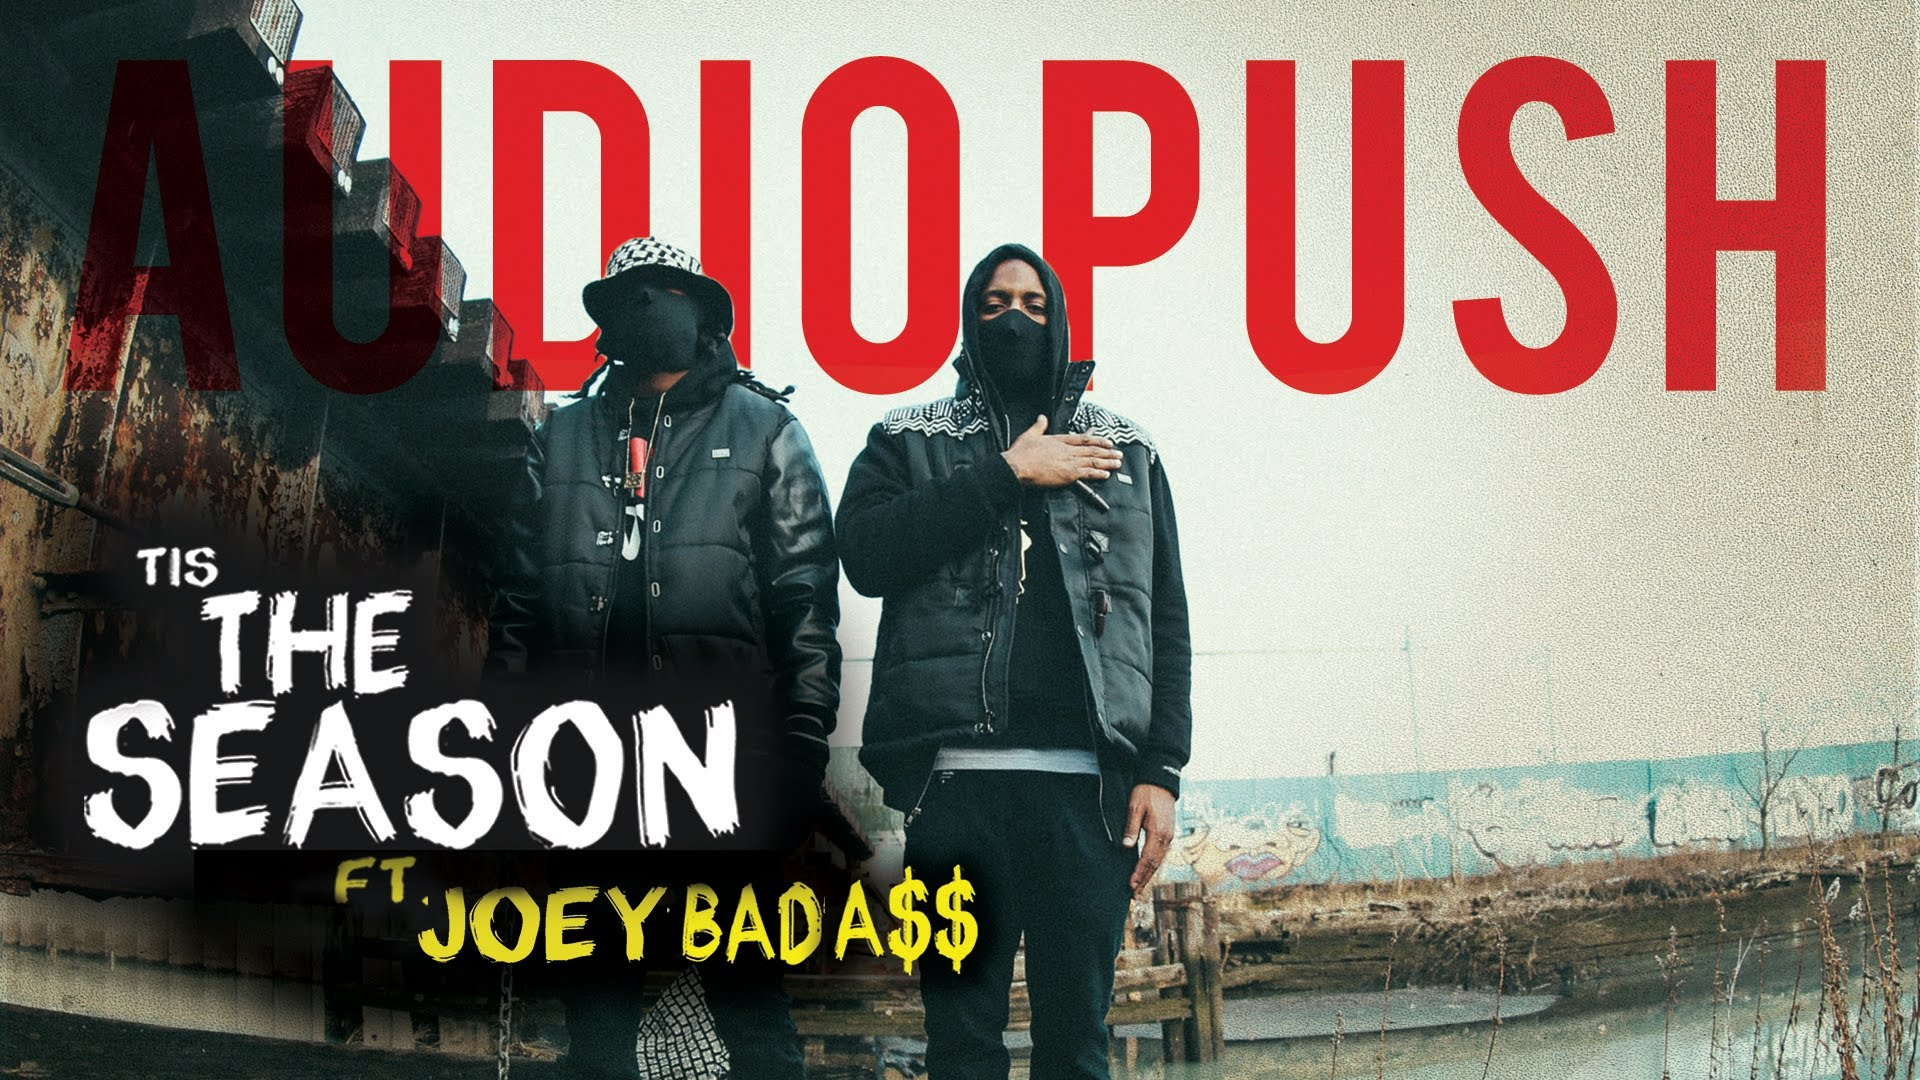 Audio Push Feat. Joey Bada$$ – Tis The Season